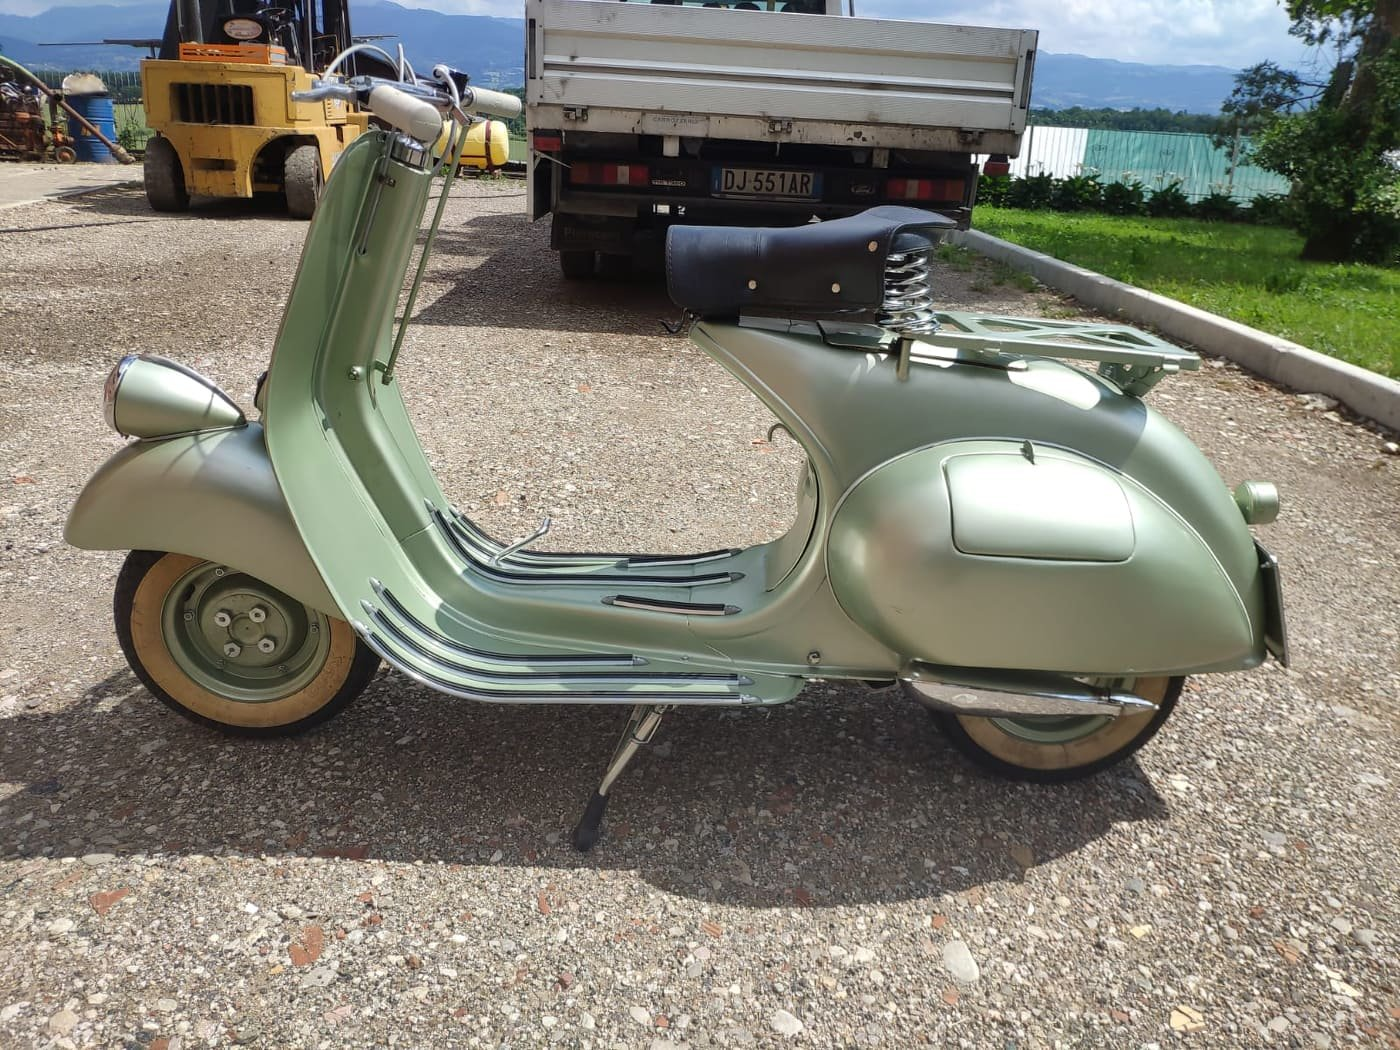 1950 Vespa V 11 T 125 Bacchetta For Sale (picture 3 of 6)